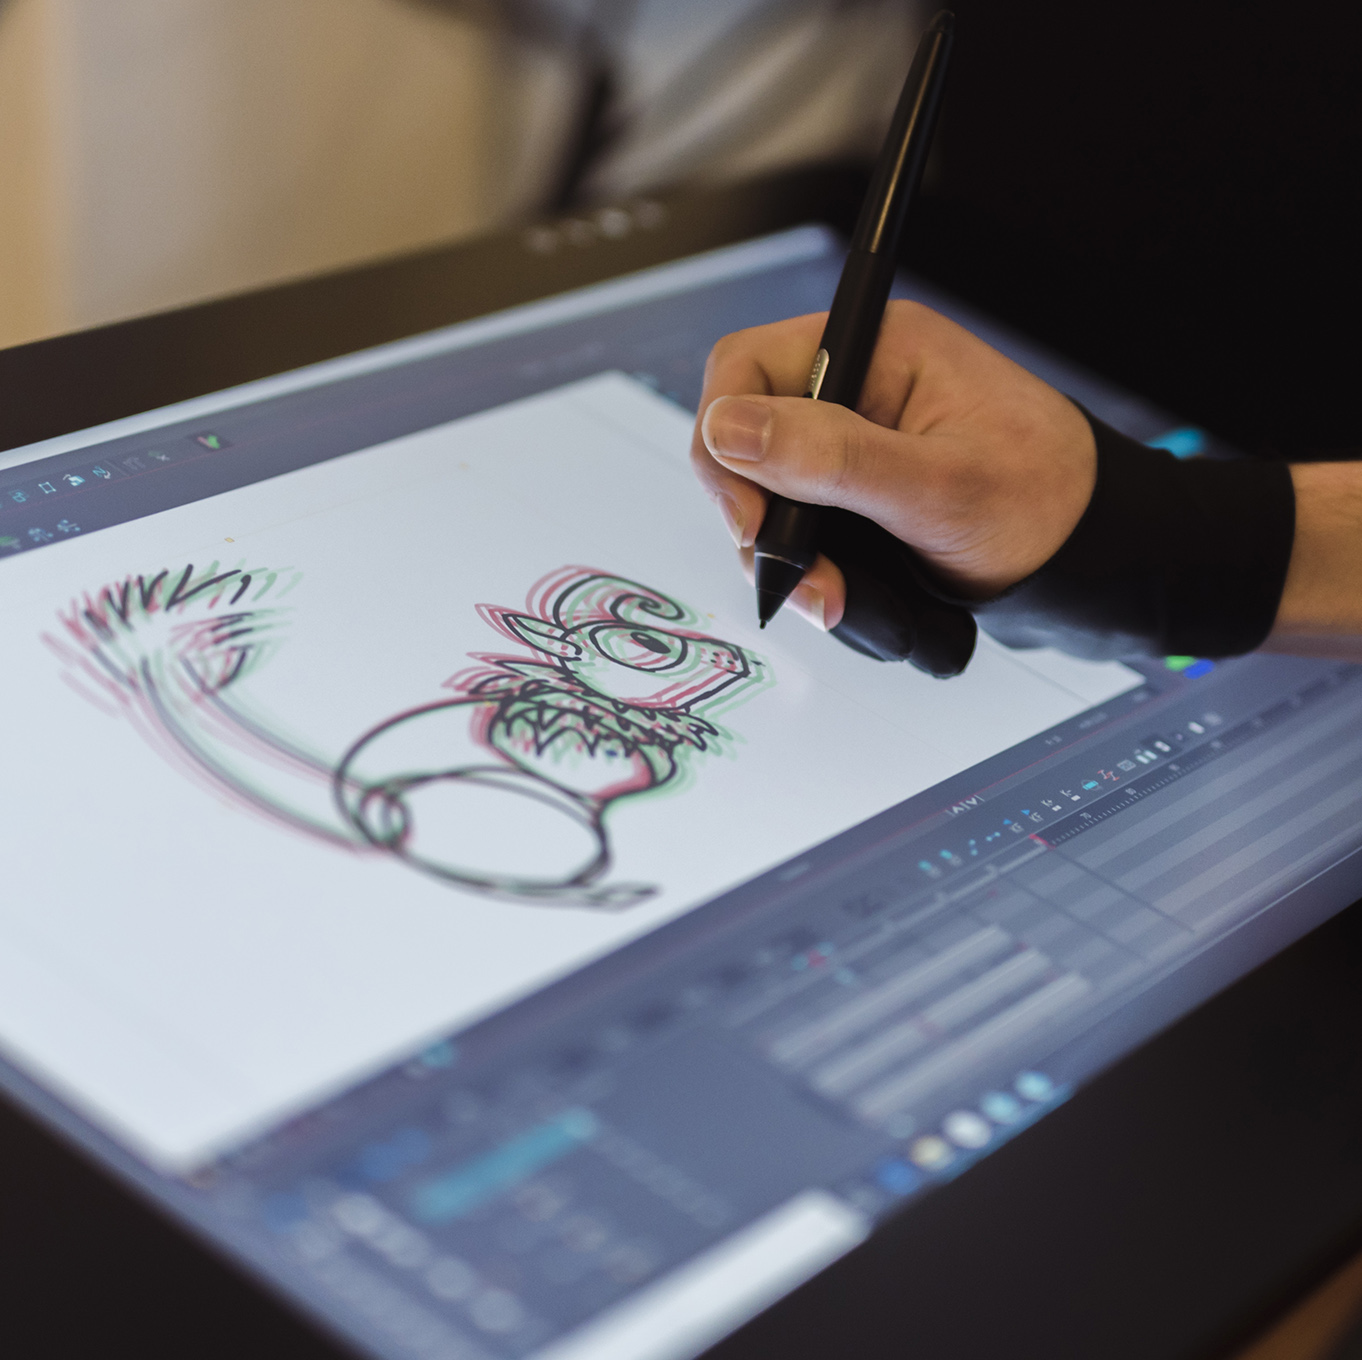 A student draws out their art concept on a tablet